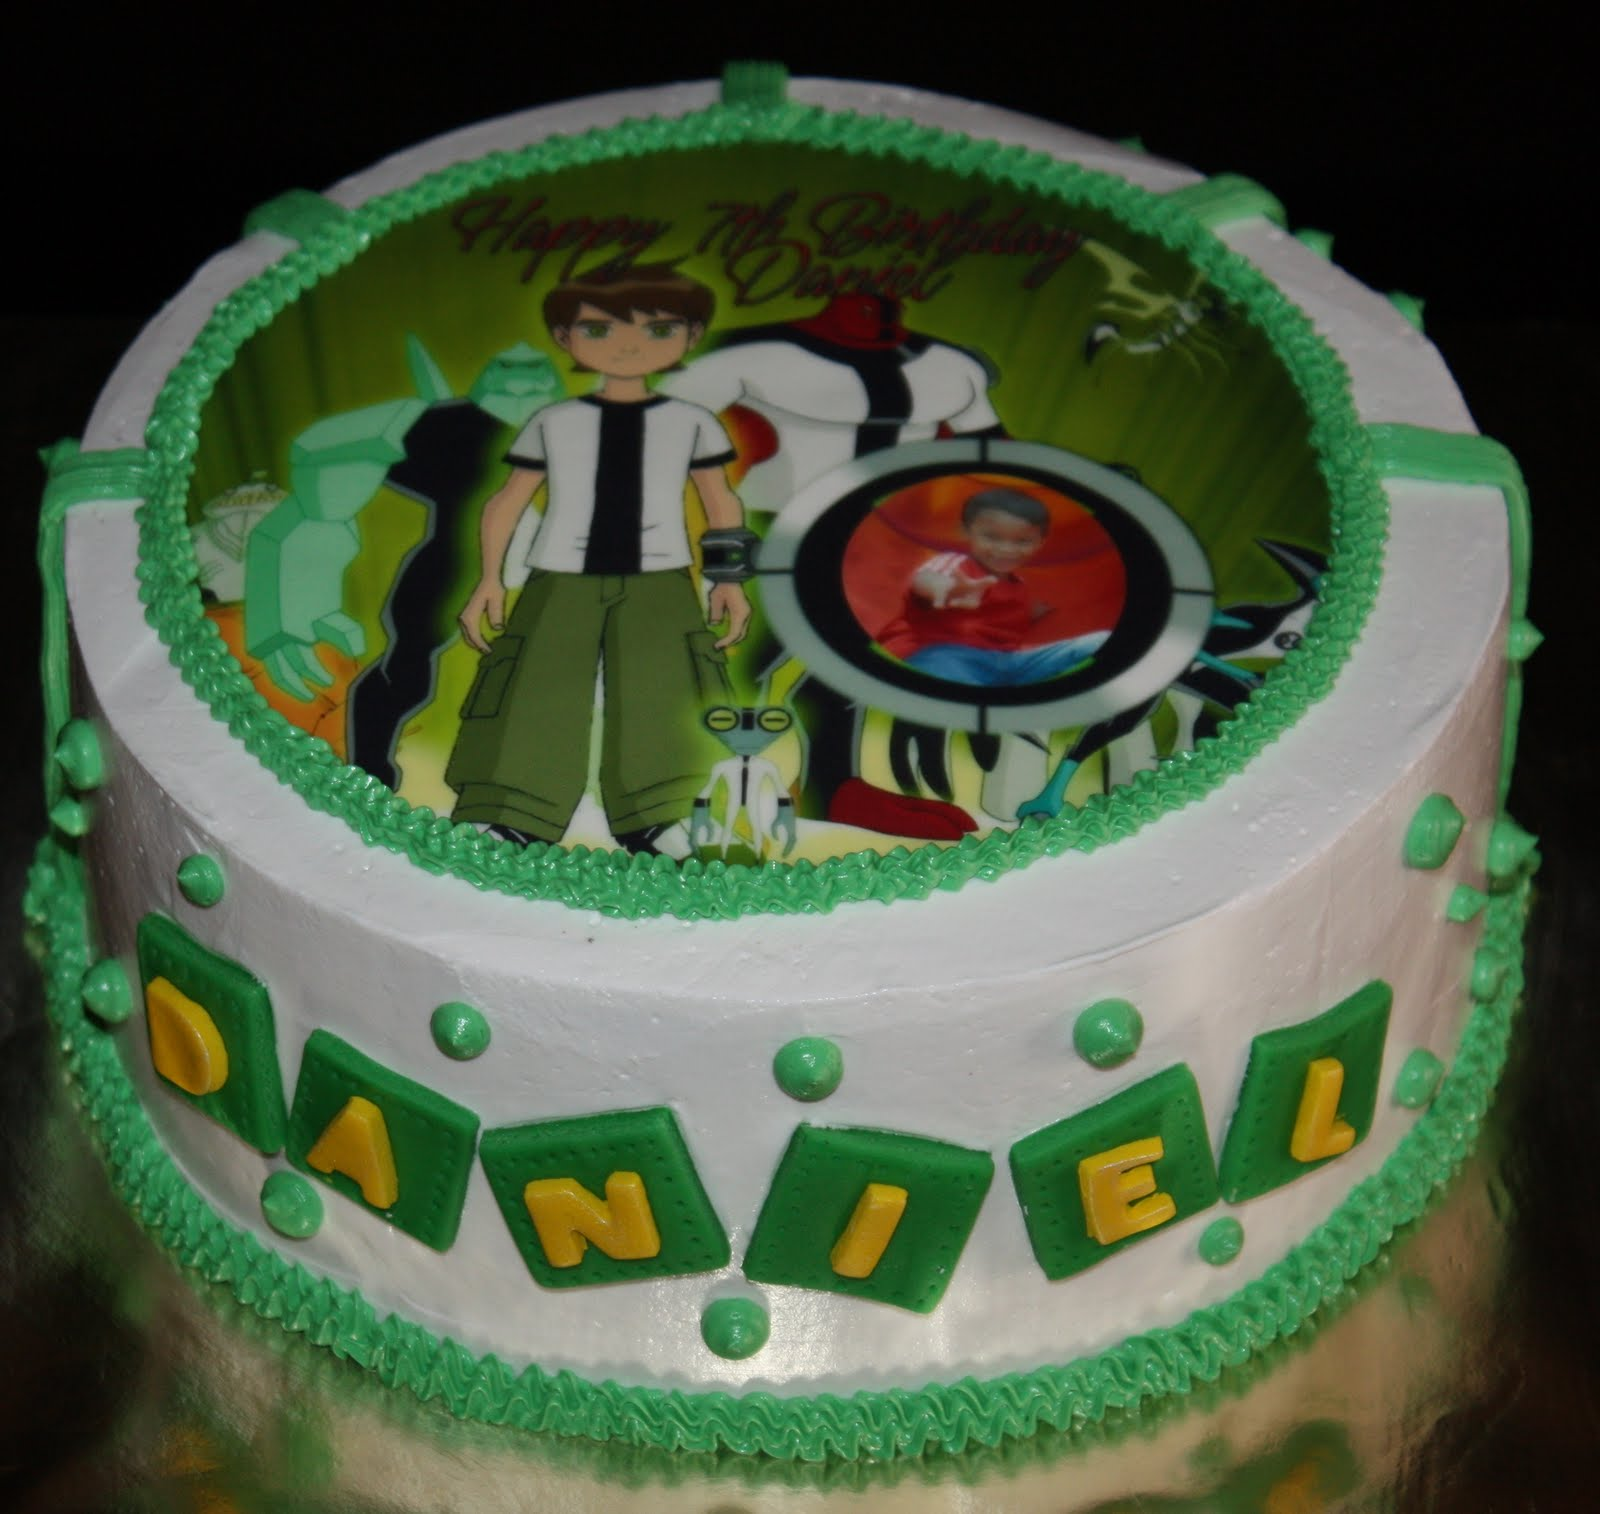 Decoration Of Birthday Cake : Ben 10 Cakes   Decoration Ideas Little Birthday Cakes